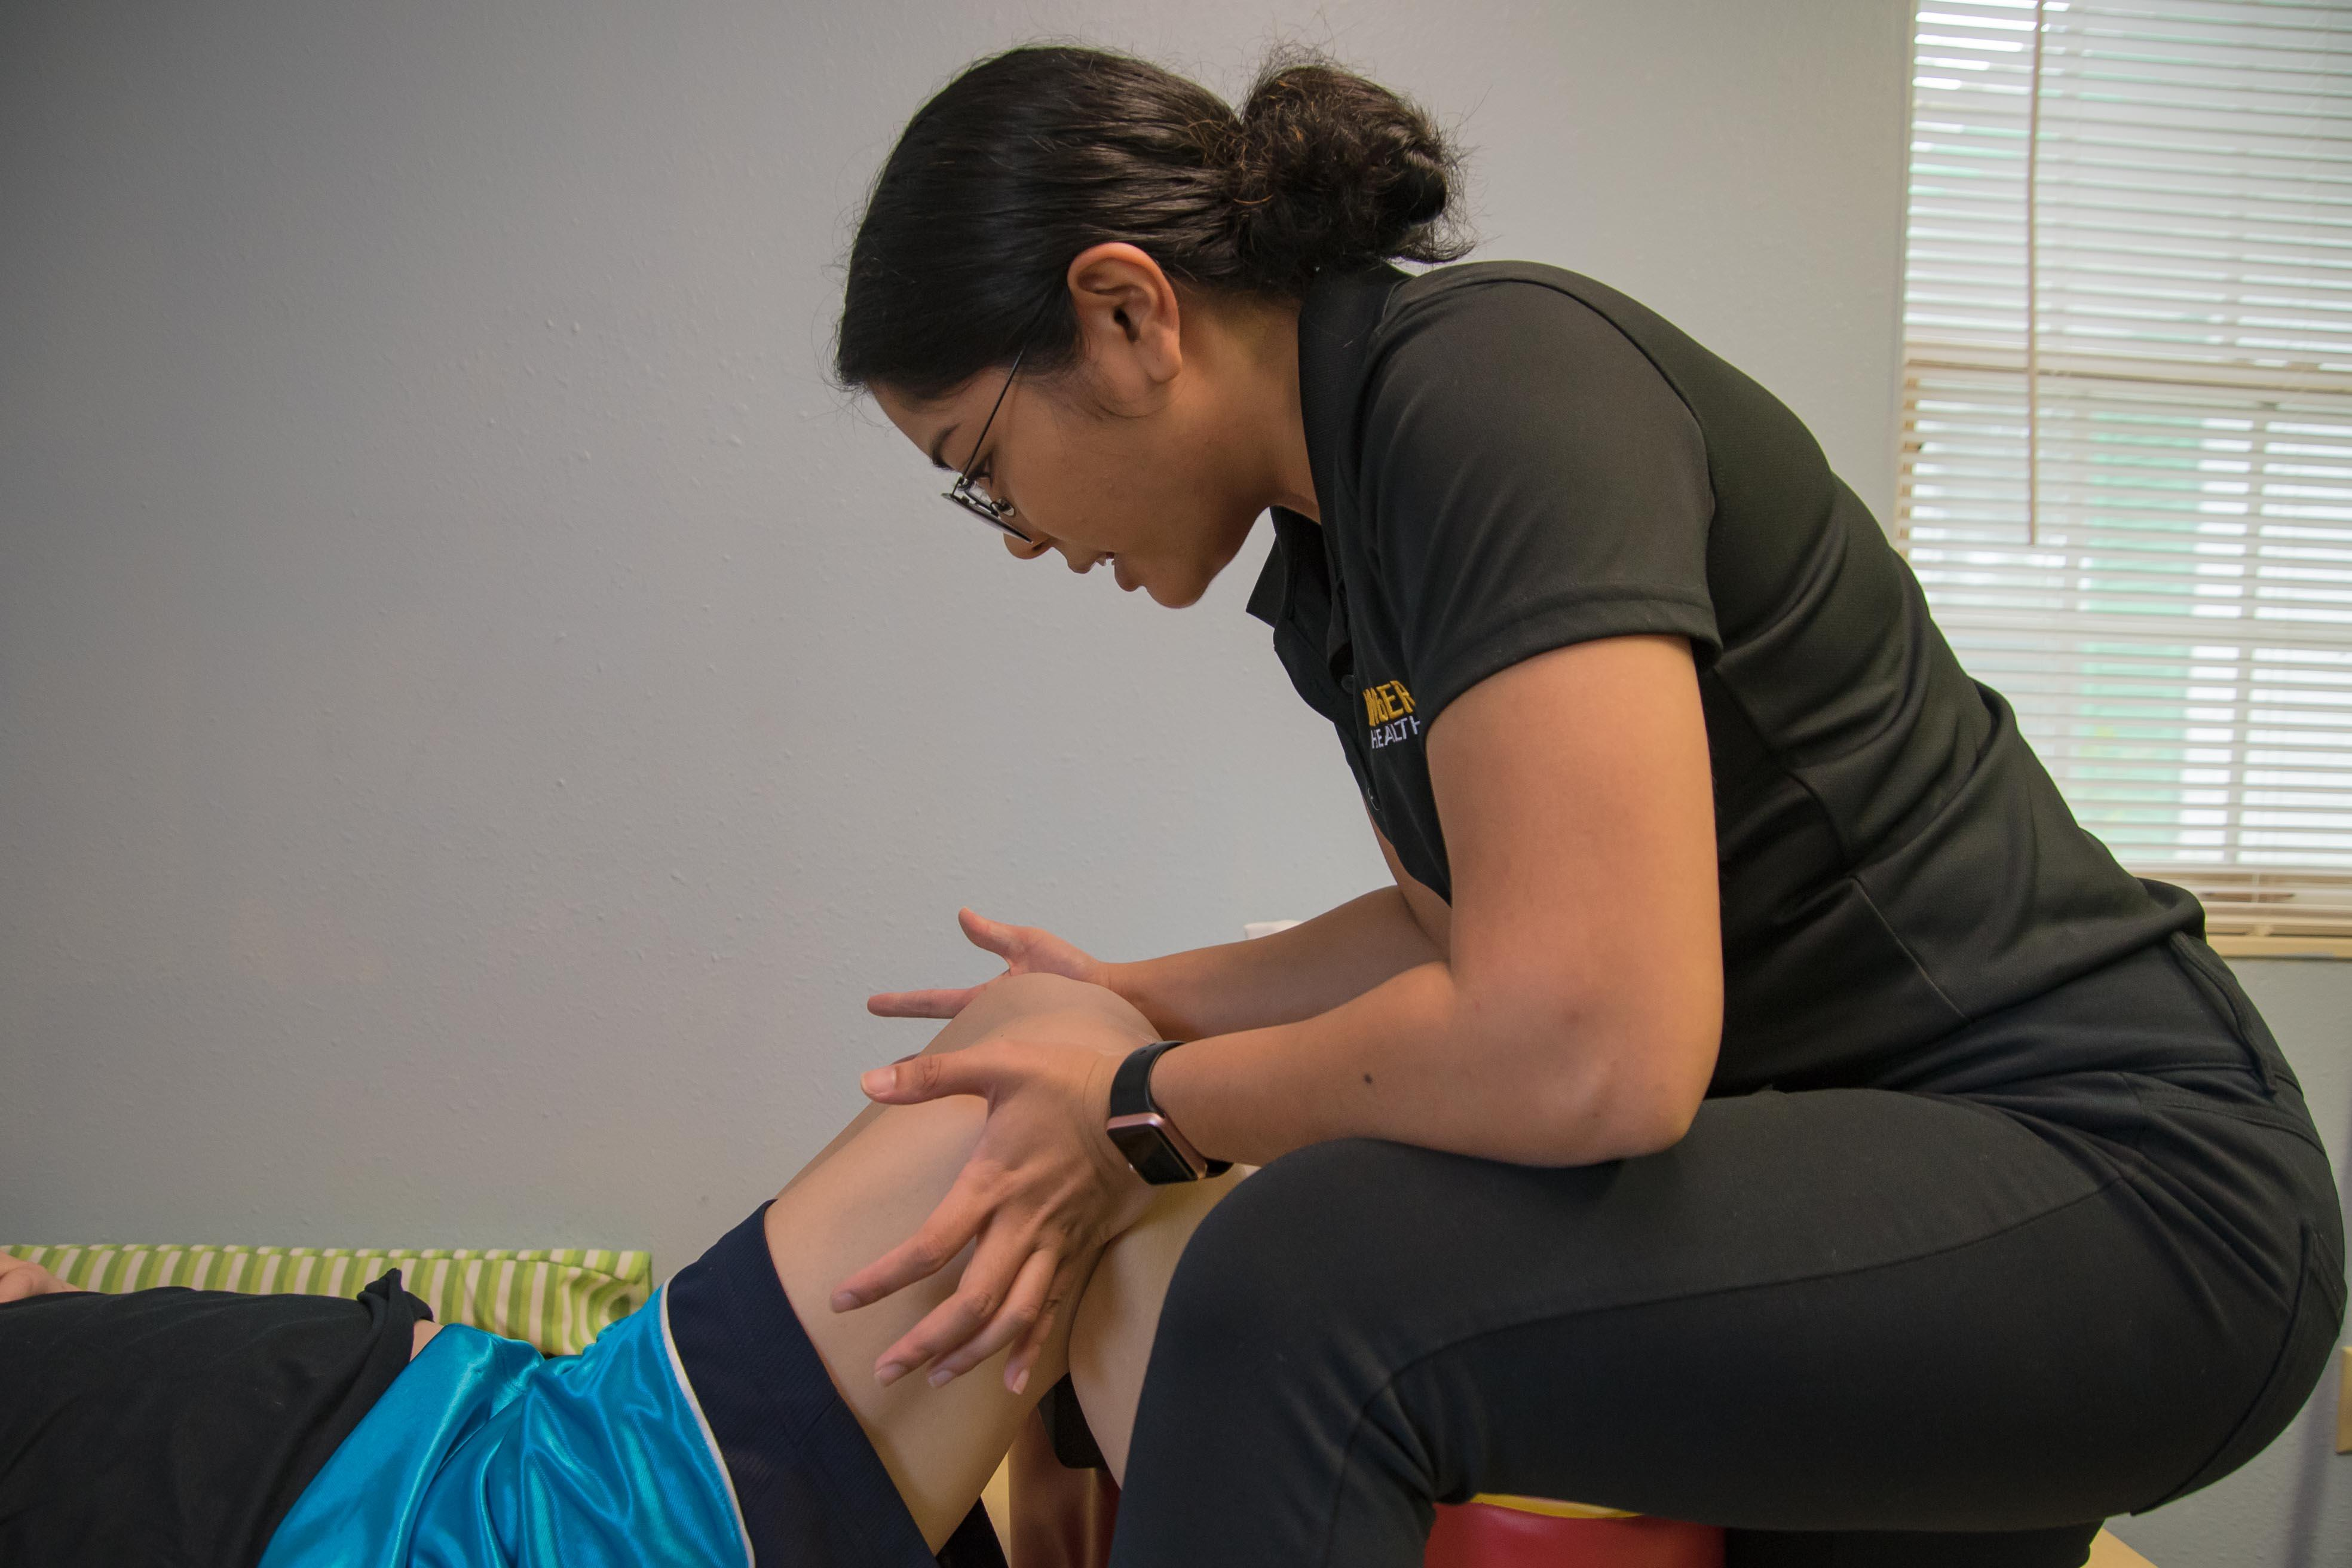 Ginger Health Occupational Physical Therapy